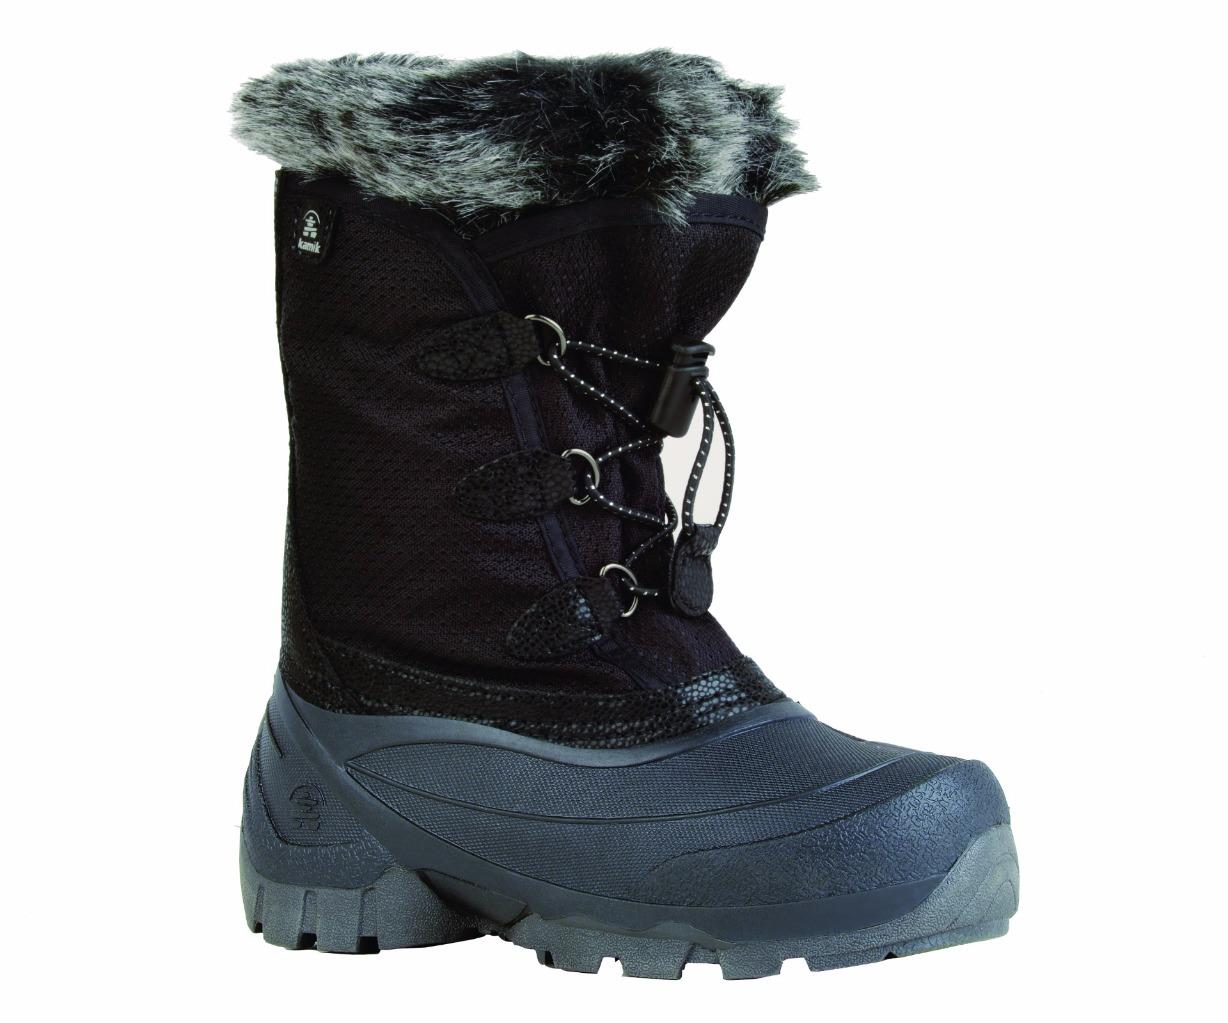 New Kamik Youth Girls Powdery Waterproof Snow Boots Sizes